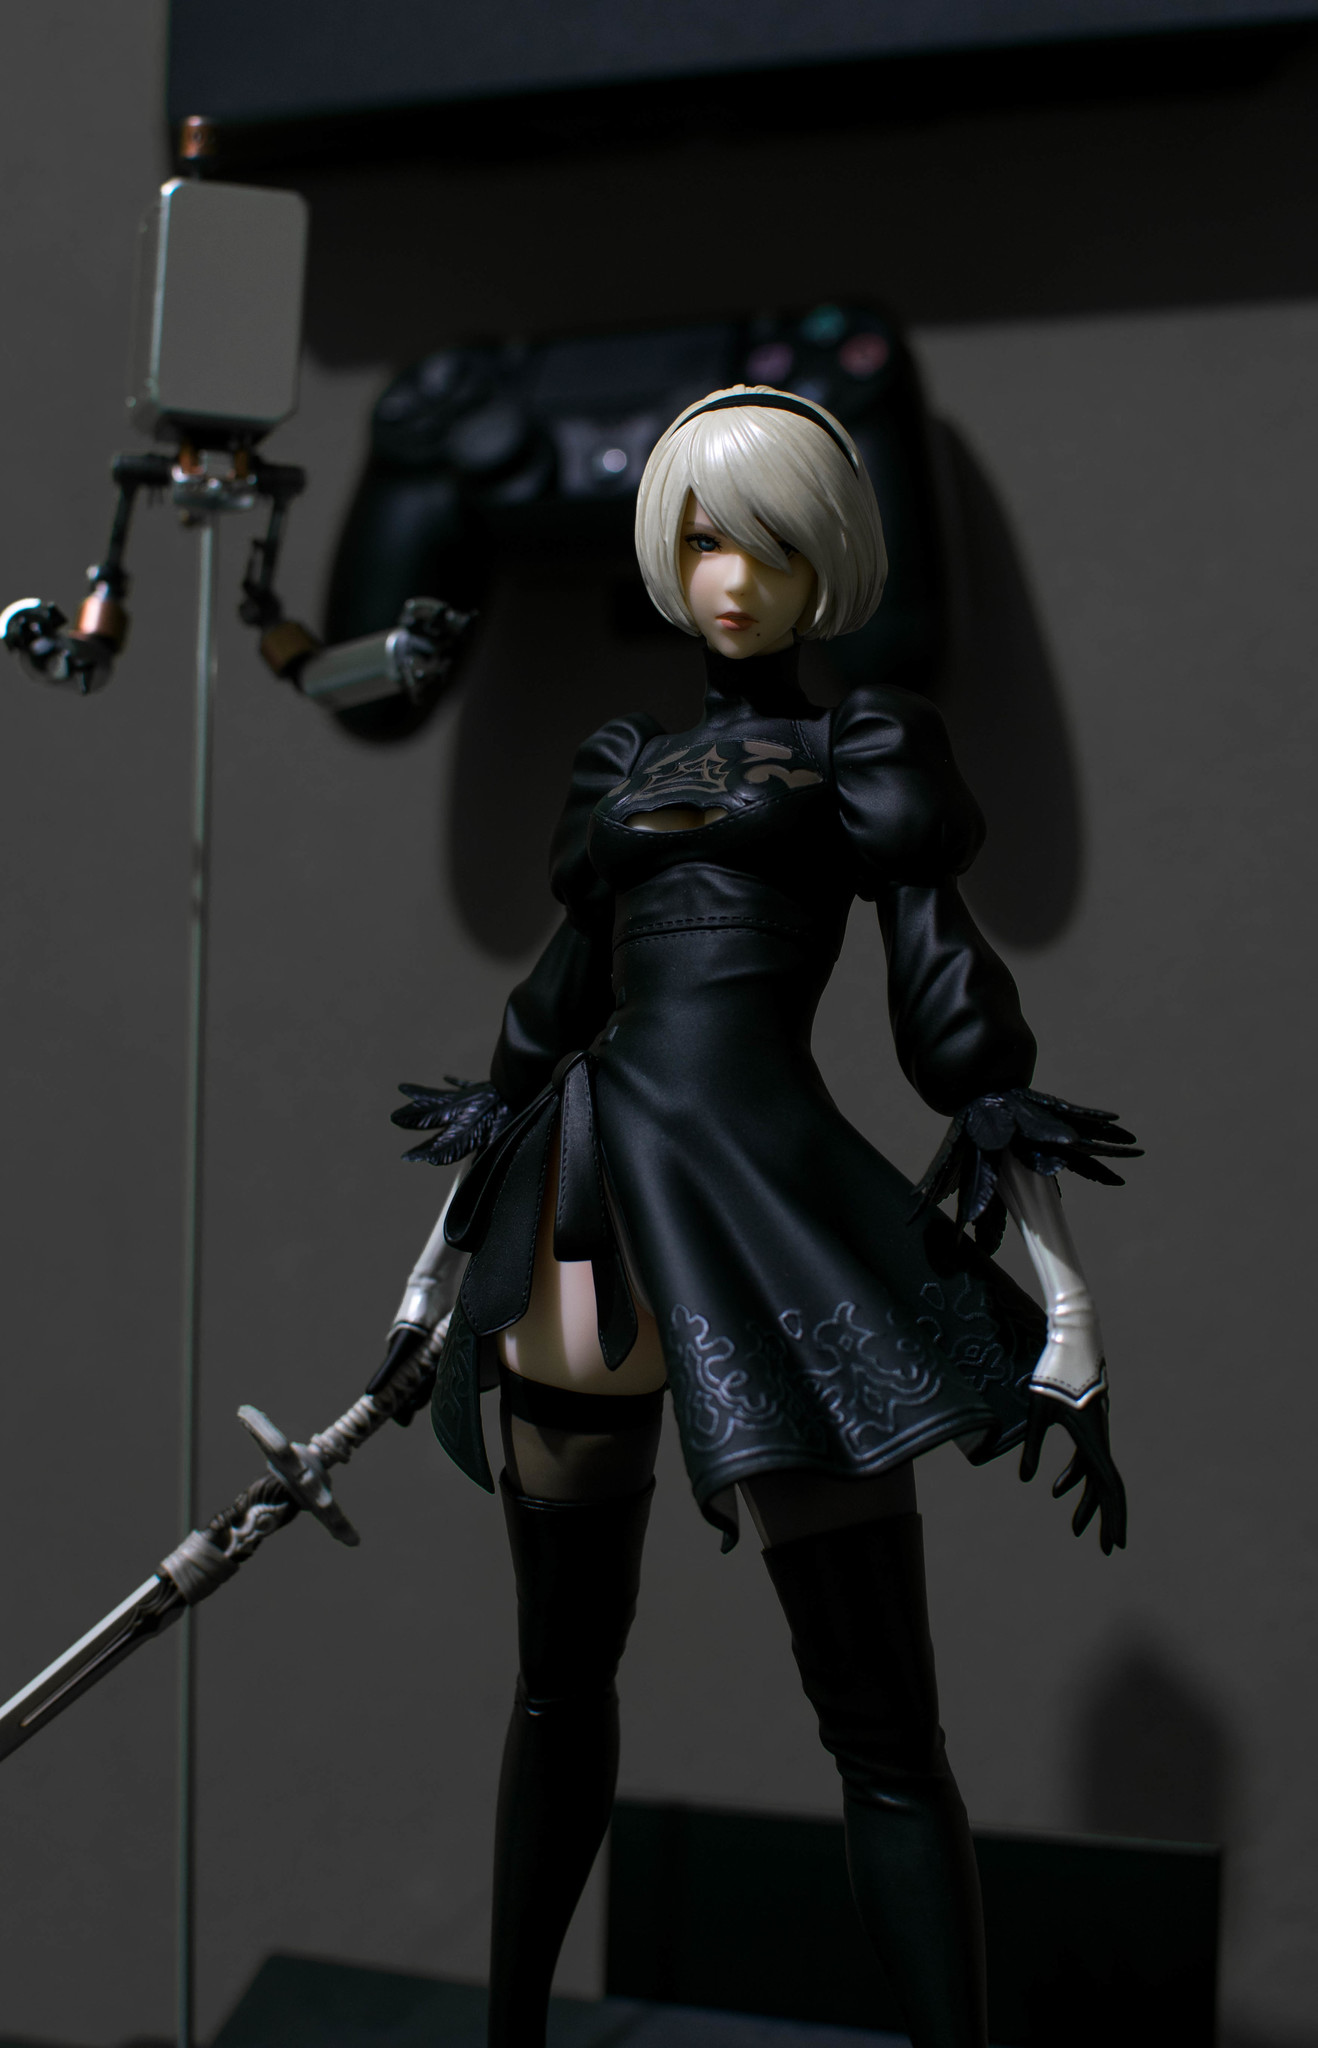 https://static.myfigurecollection.net/upload/pictures/2019/09/30/2306856.jpeg